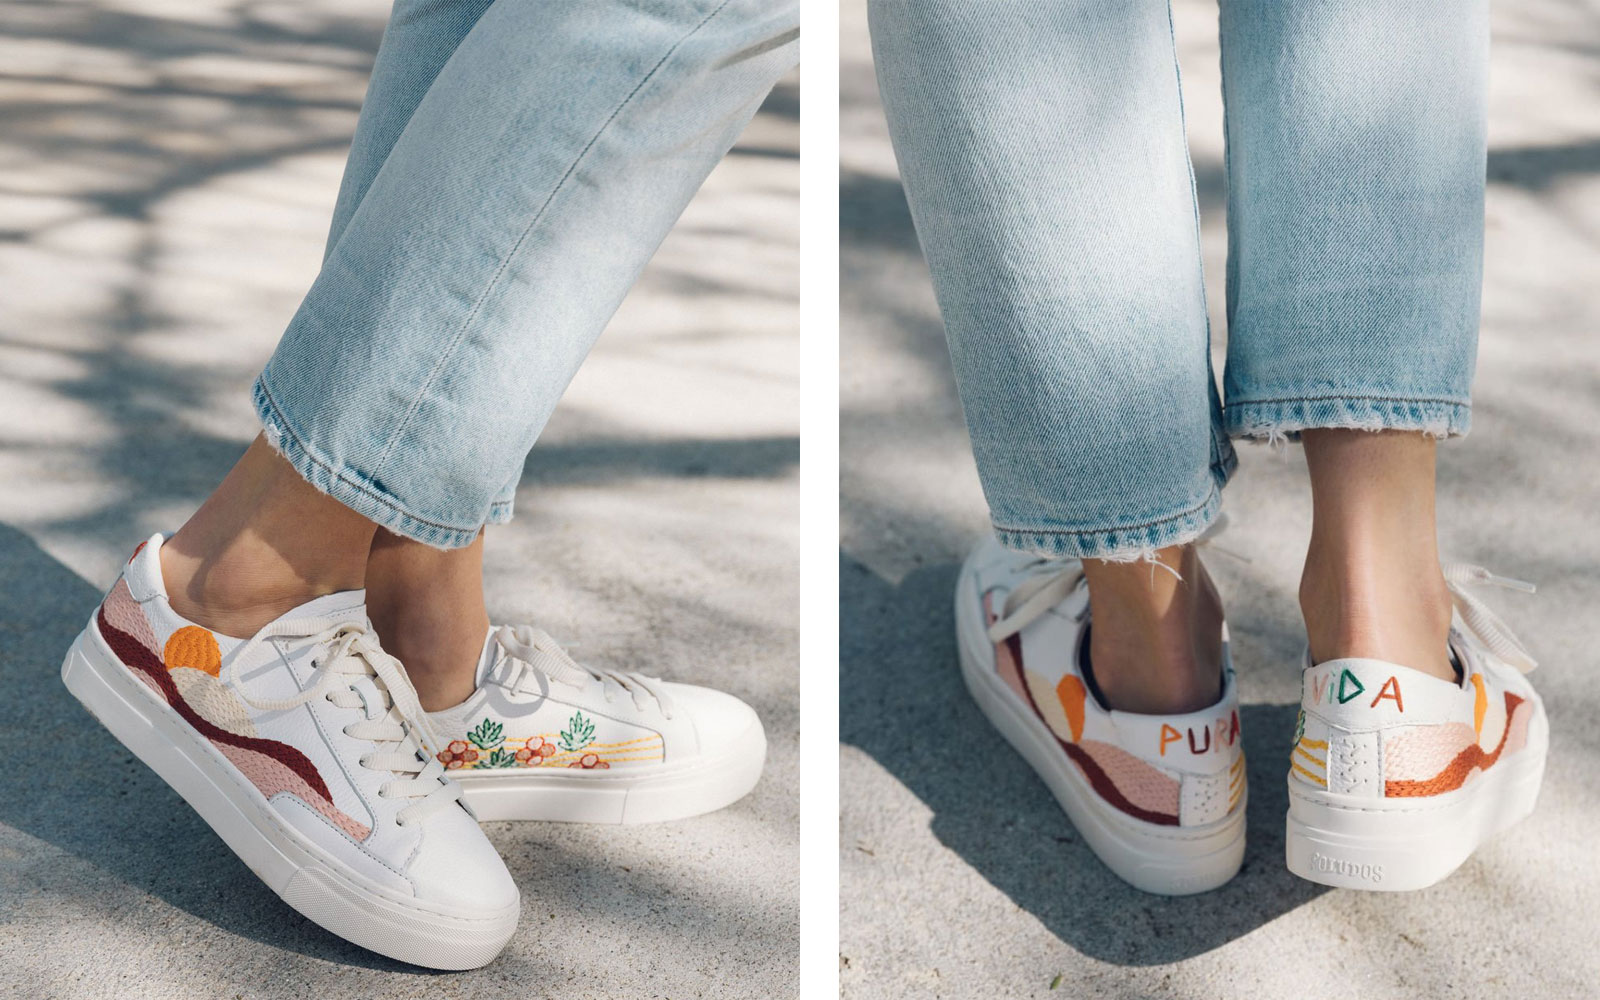 Women's embroidered sneakers